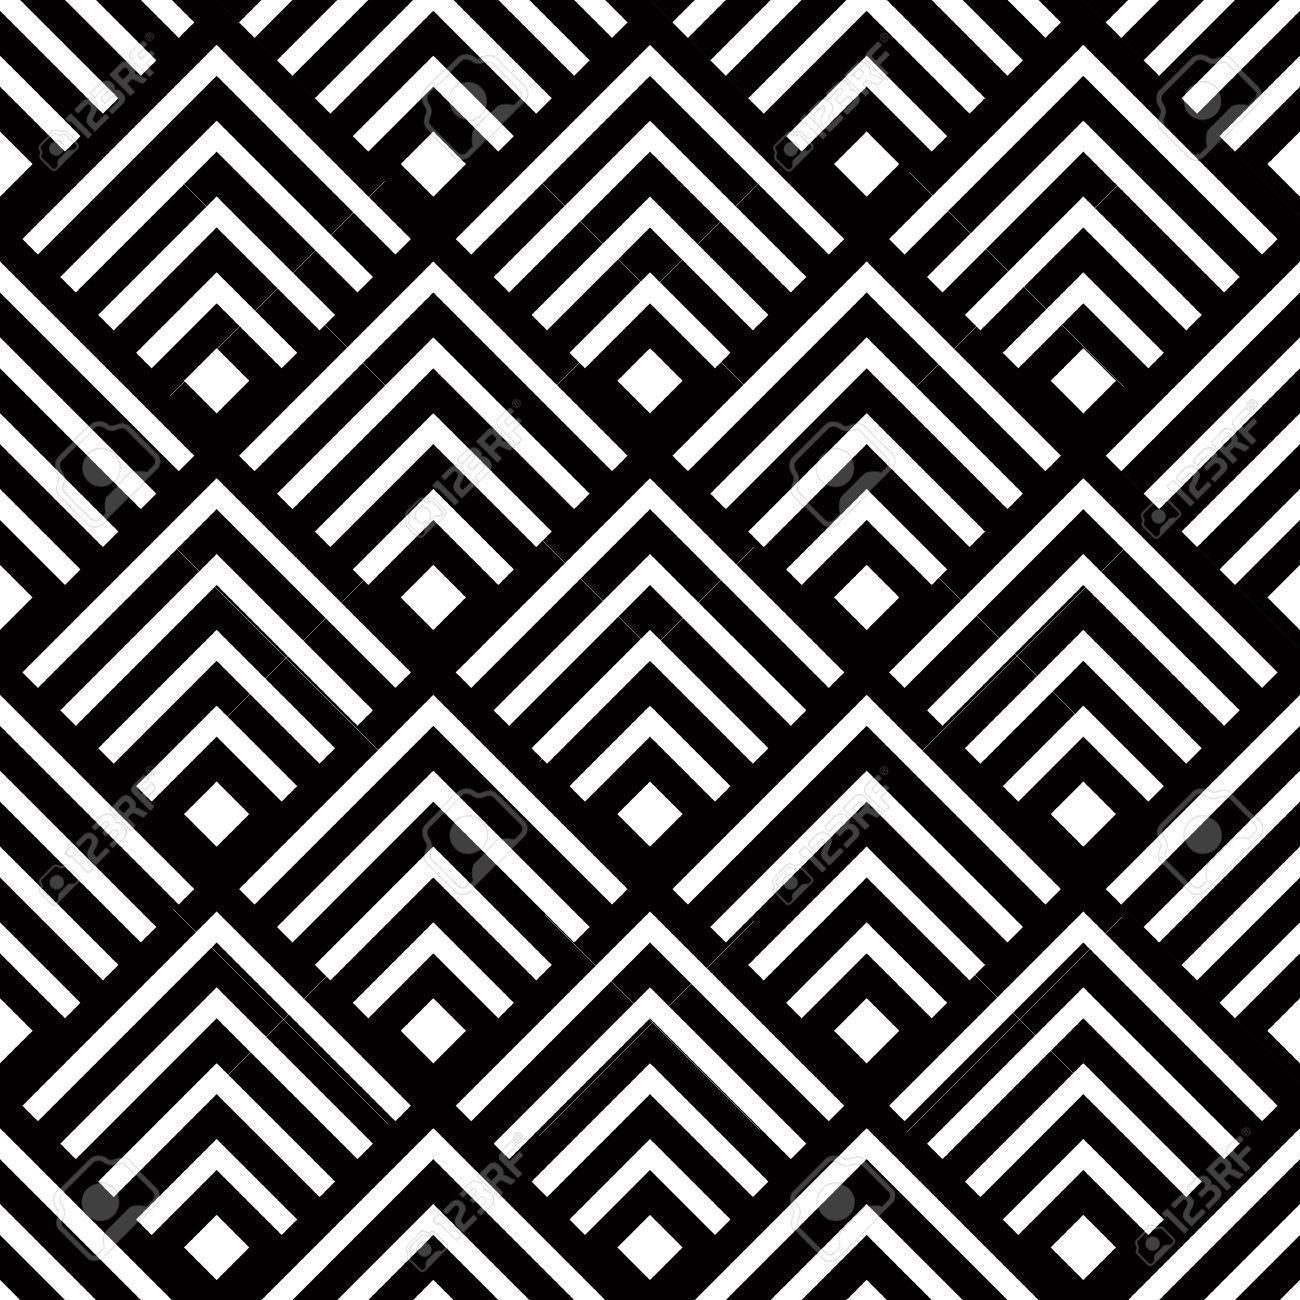 29722769-De-Fondo-Sin-Fisuras-Vector-Geom-Trico-Simple-Modelo-De within Simple Black And White Patterns Stripes 29824